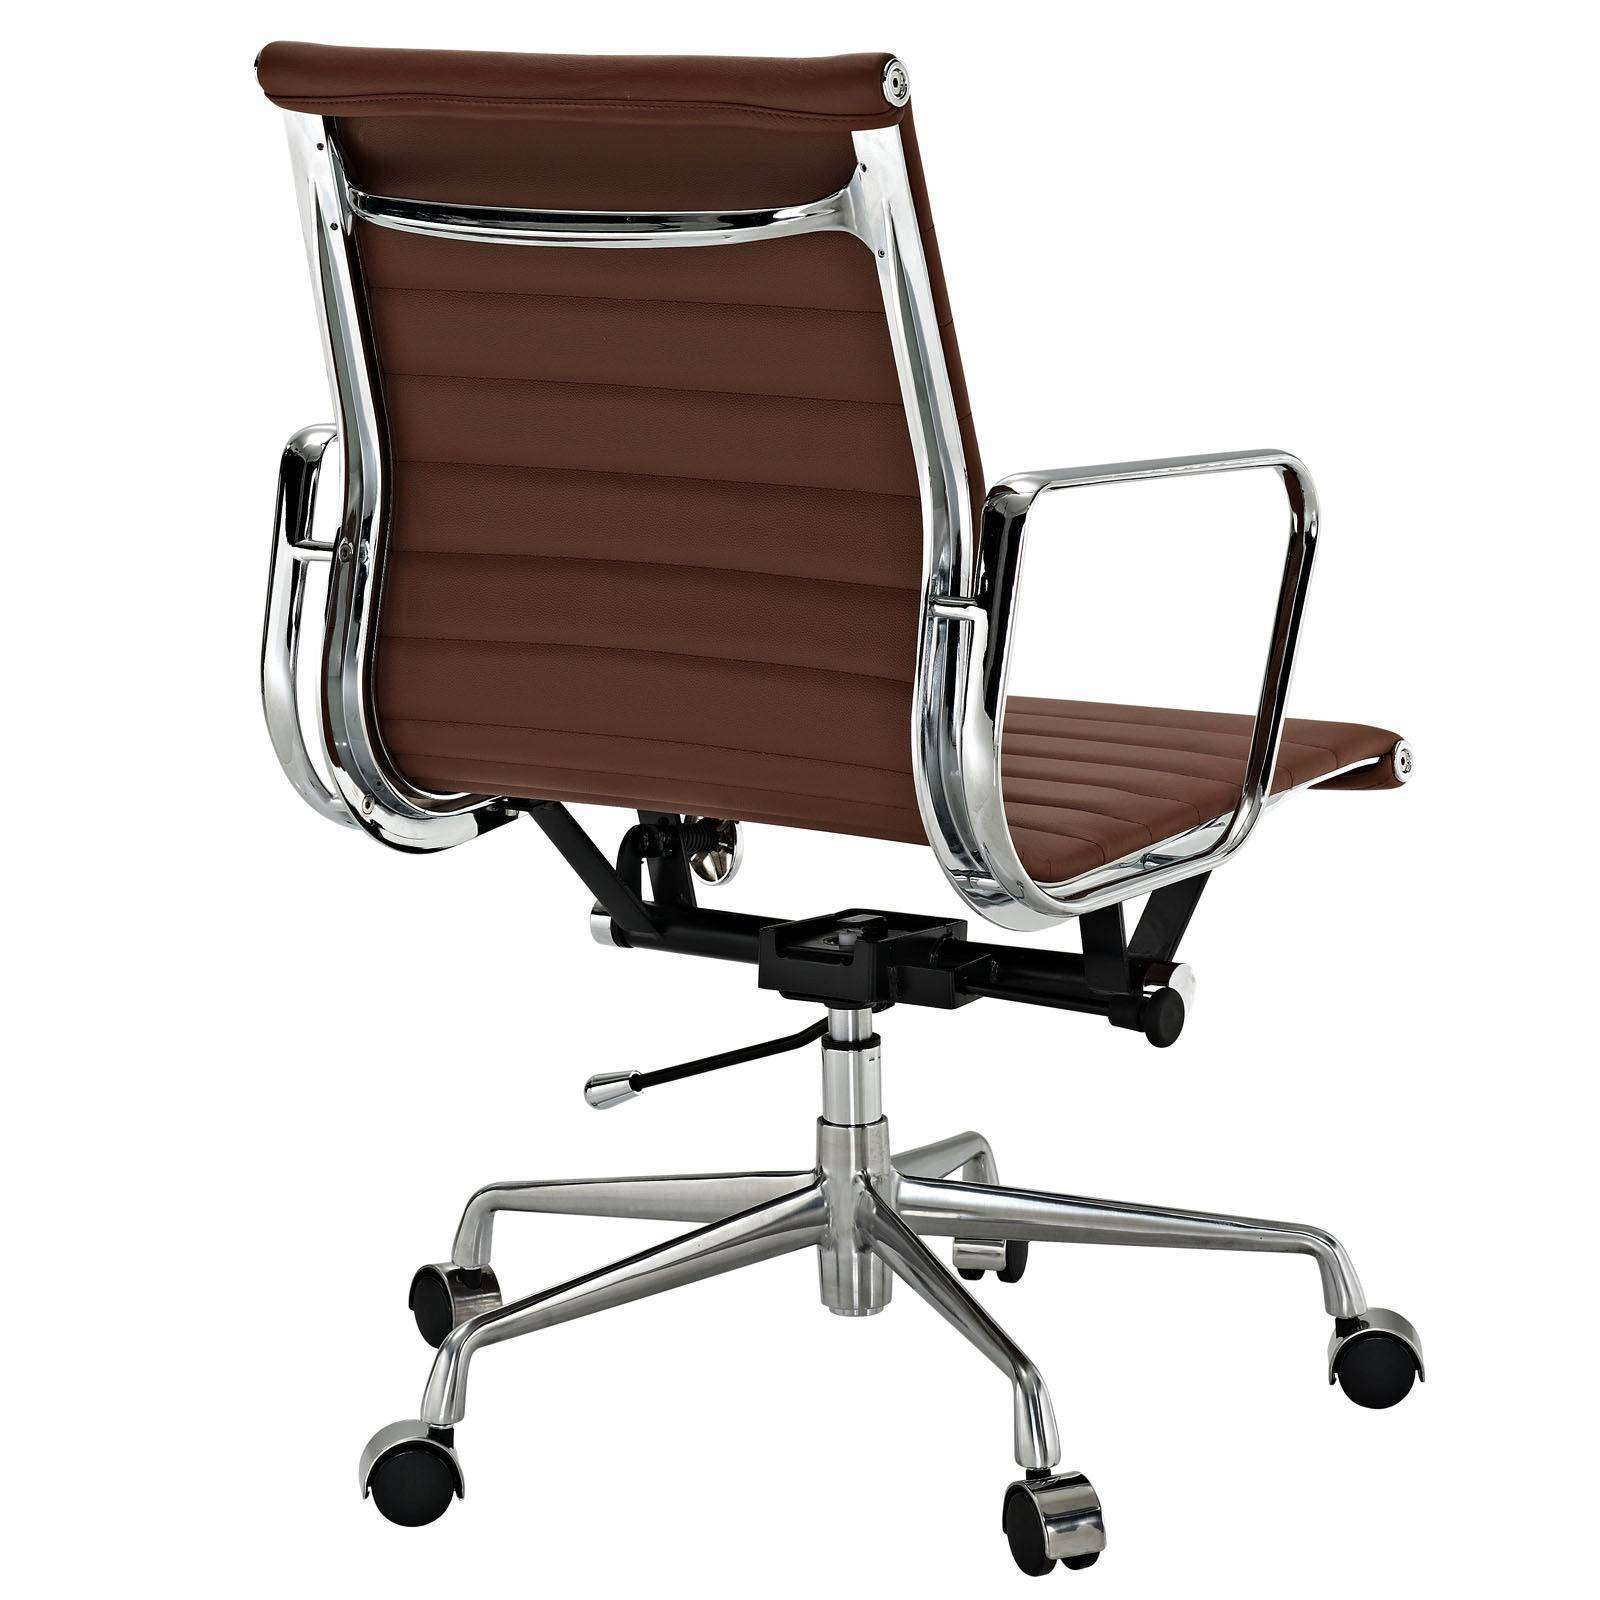 eames office chair aluminum management style office chair modterior. Black Bedroom Furniture Sets. Home Design Ideas